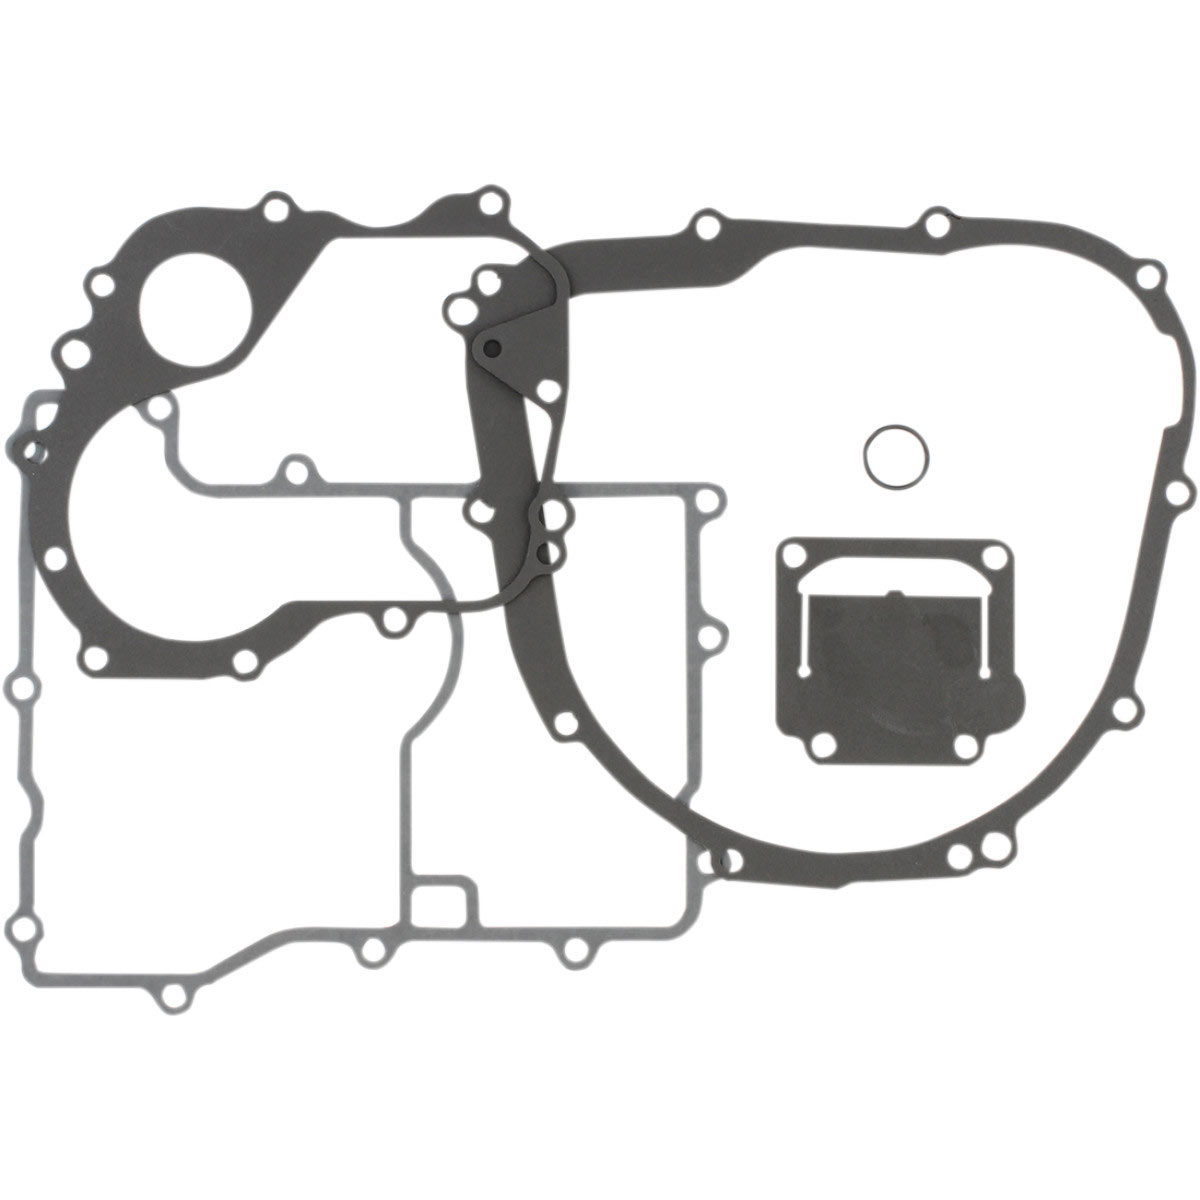 Cometic Lower End Gasket Kit For Zx7r 96 03